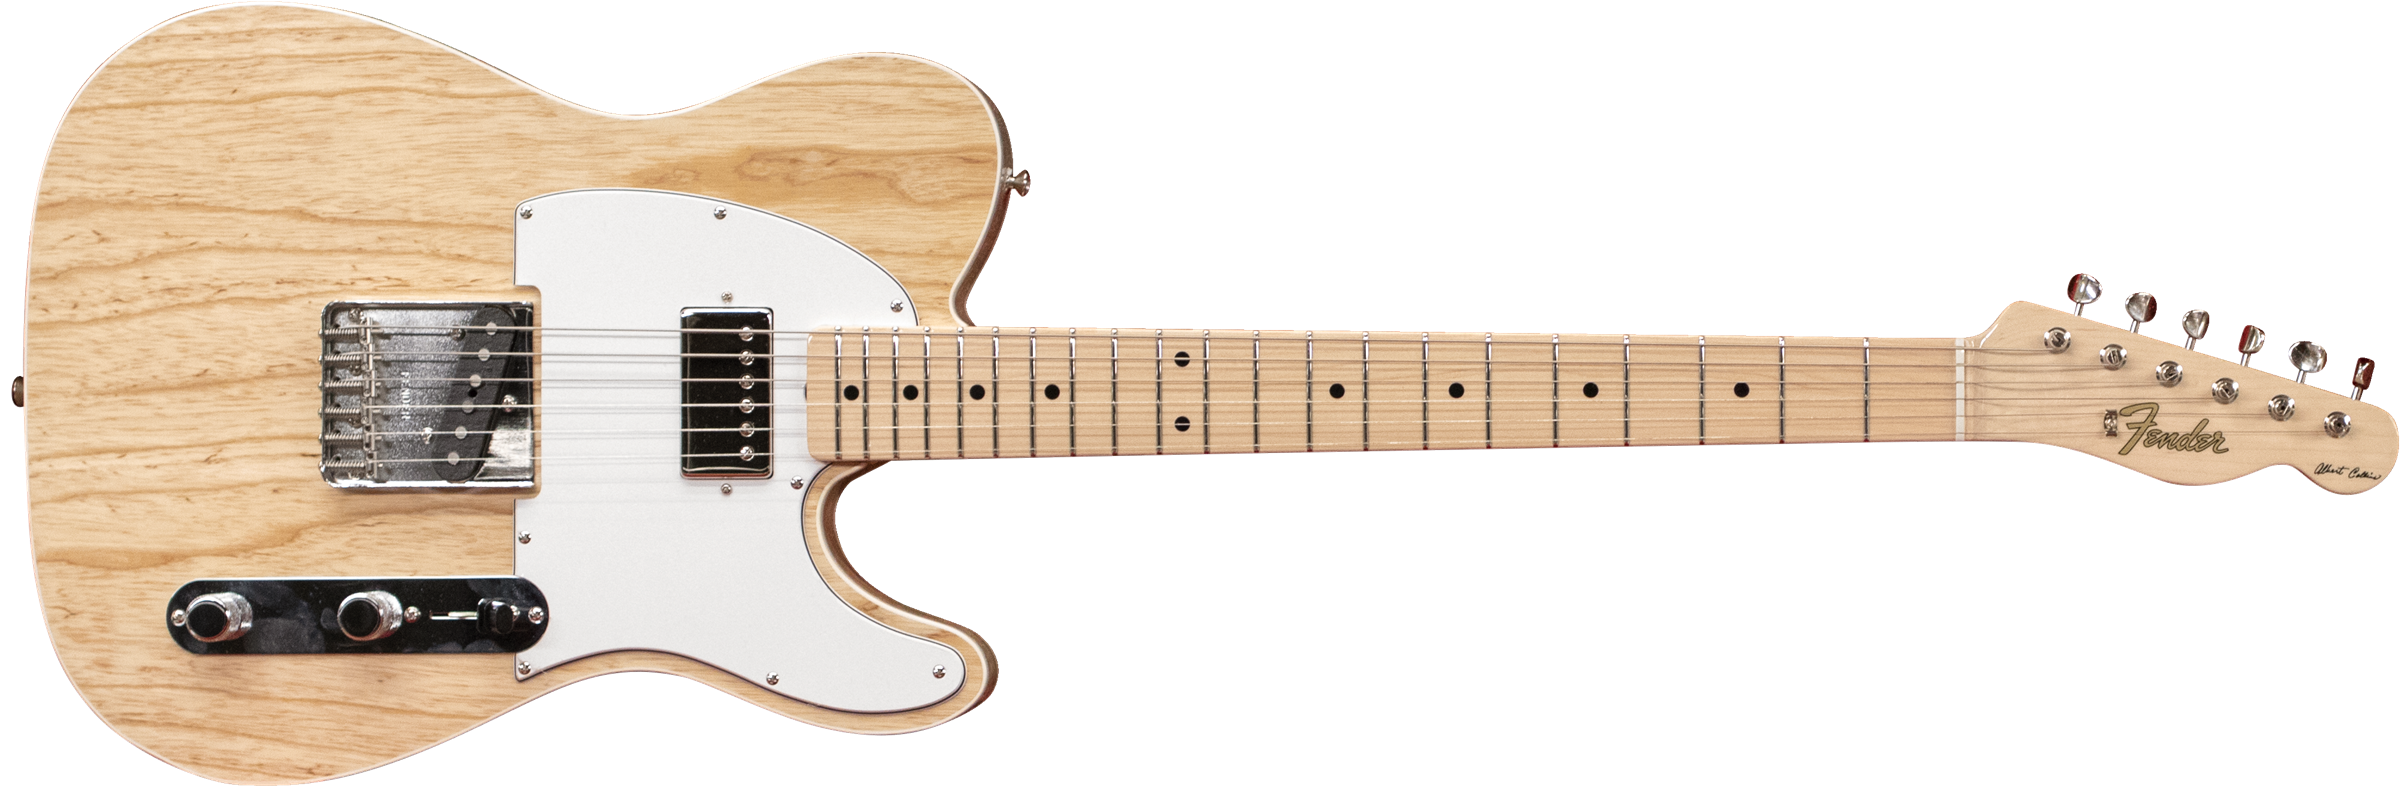 ... Albert Collins Signature Telecaster®. Model #: 0108800821. Hover to Zoom